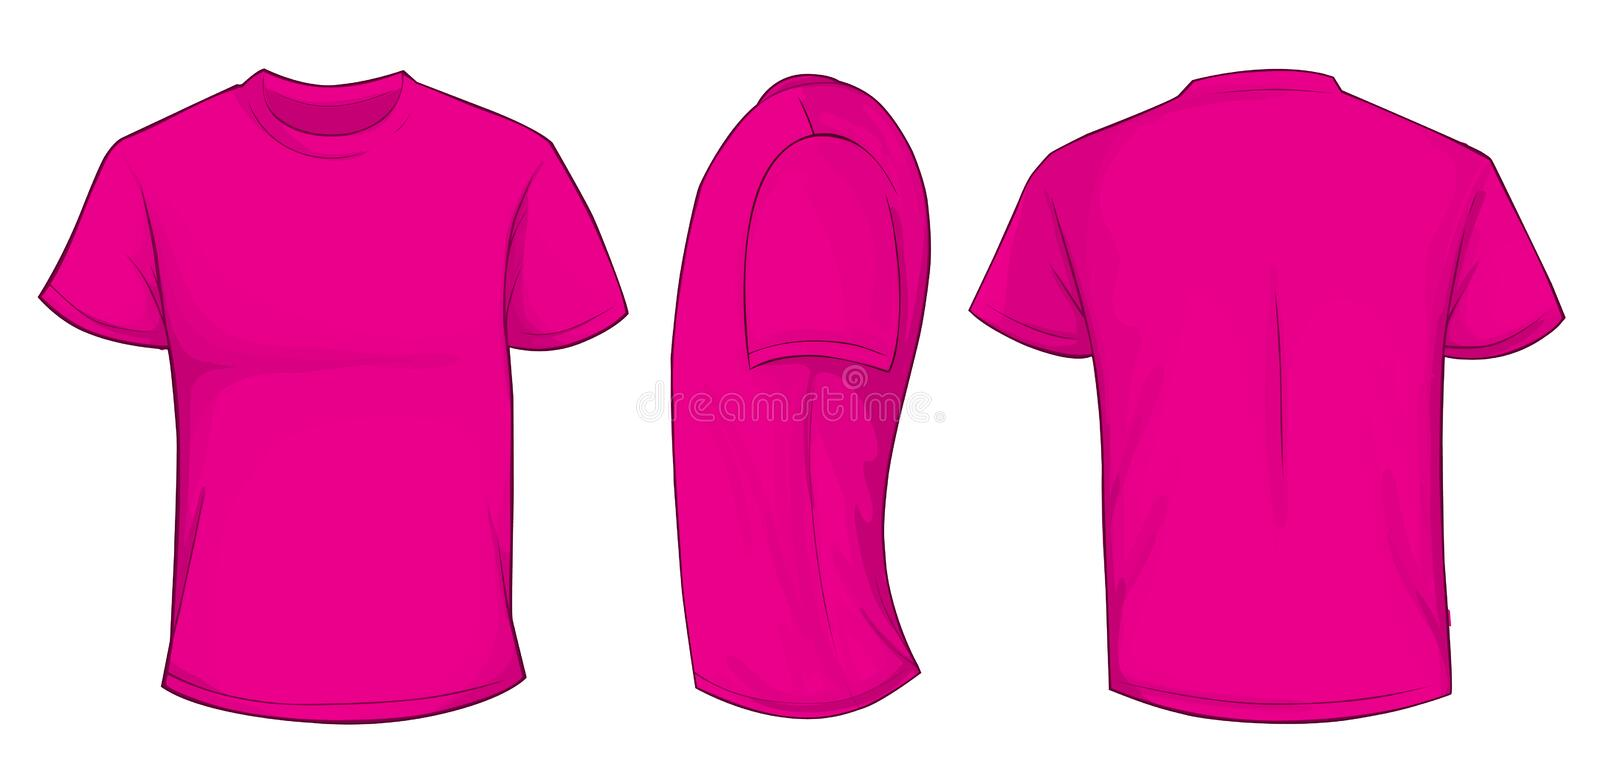 Pink shirt template stock vector illustration of casual for Pink t shirt template